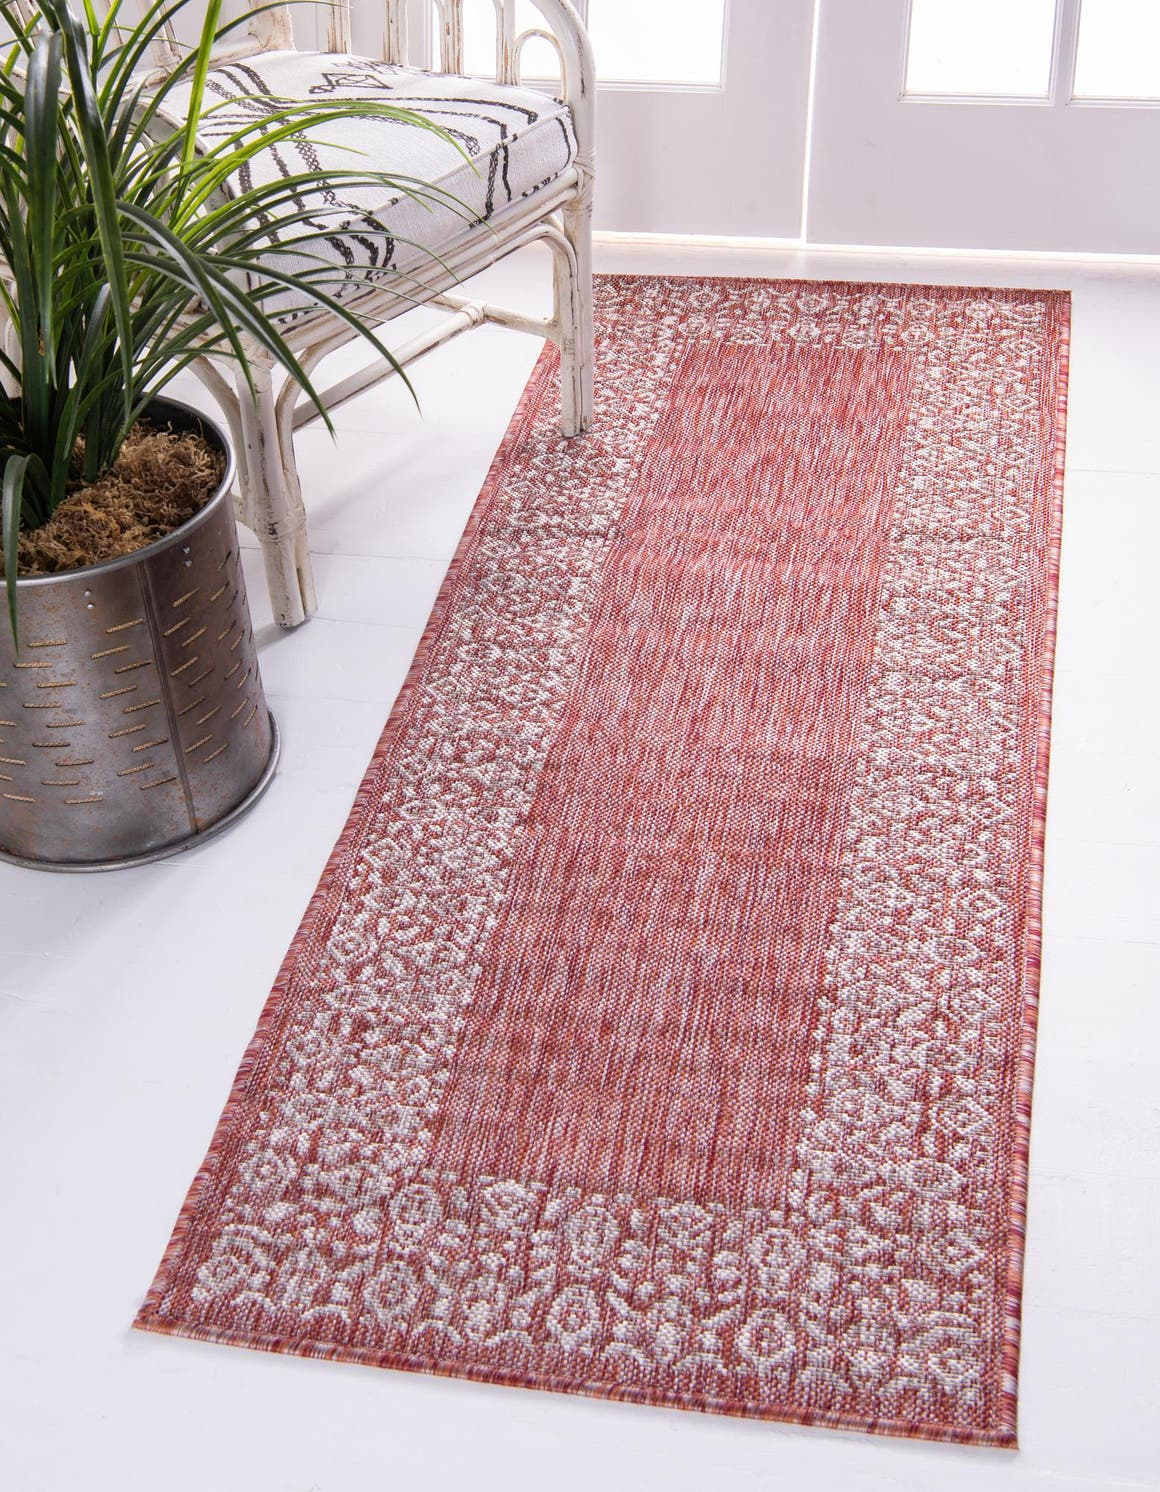 2' x 6' Outdoor Border Runner Rug main image